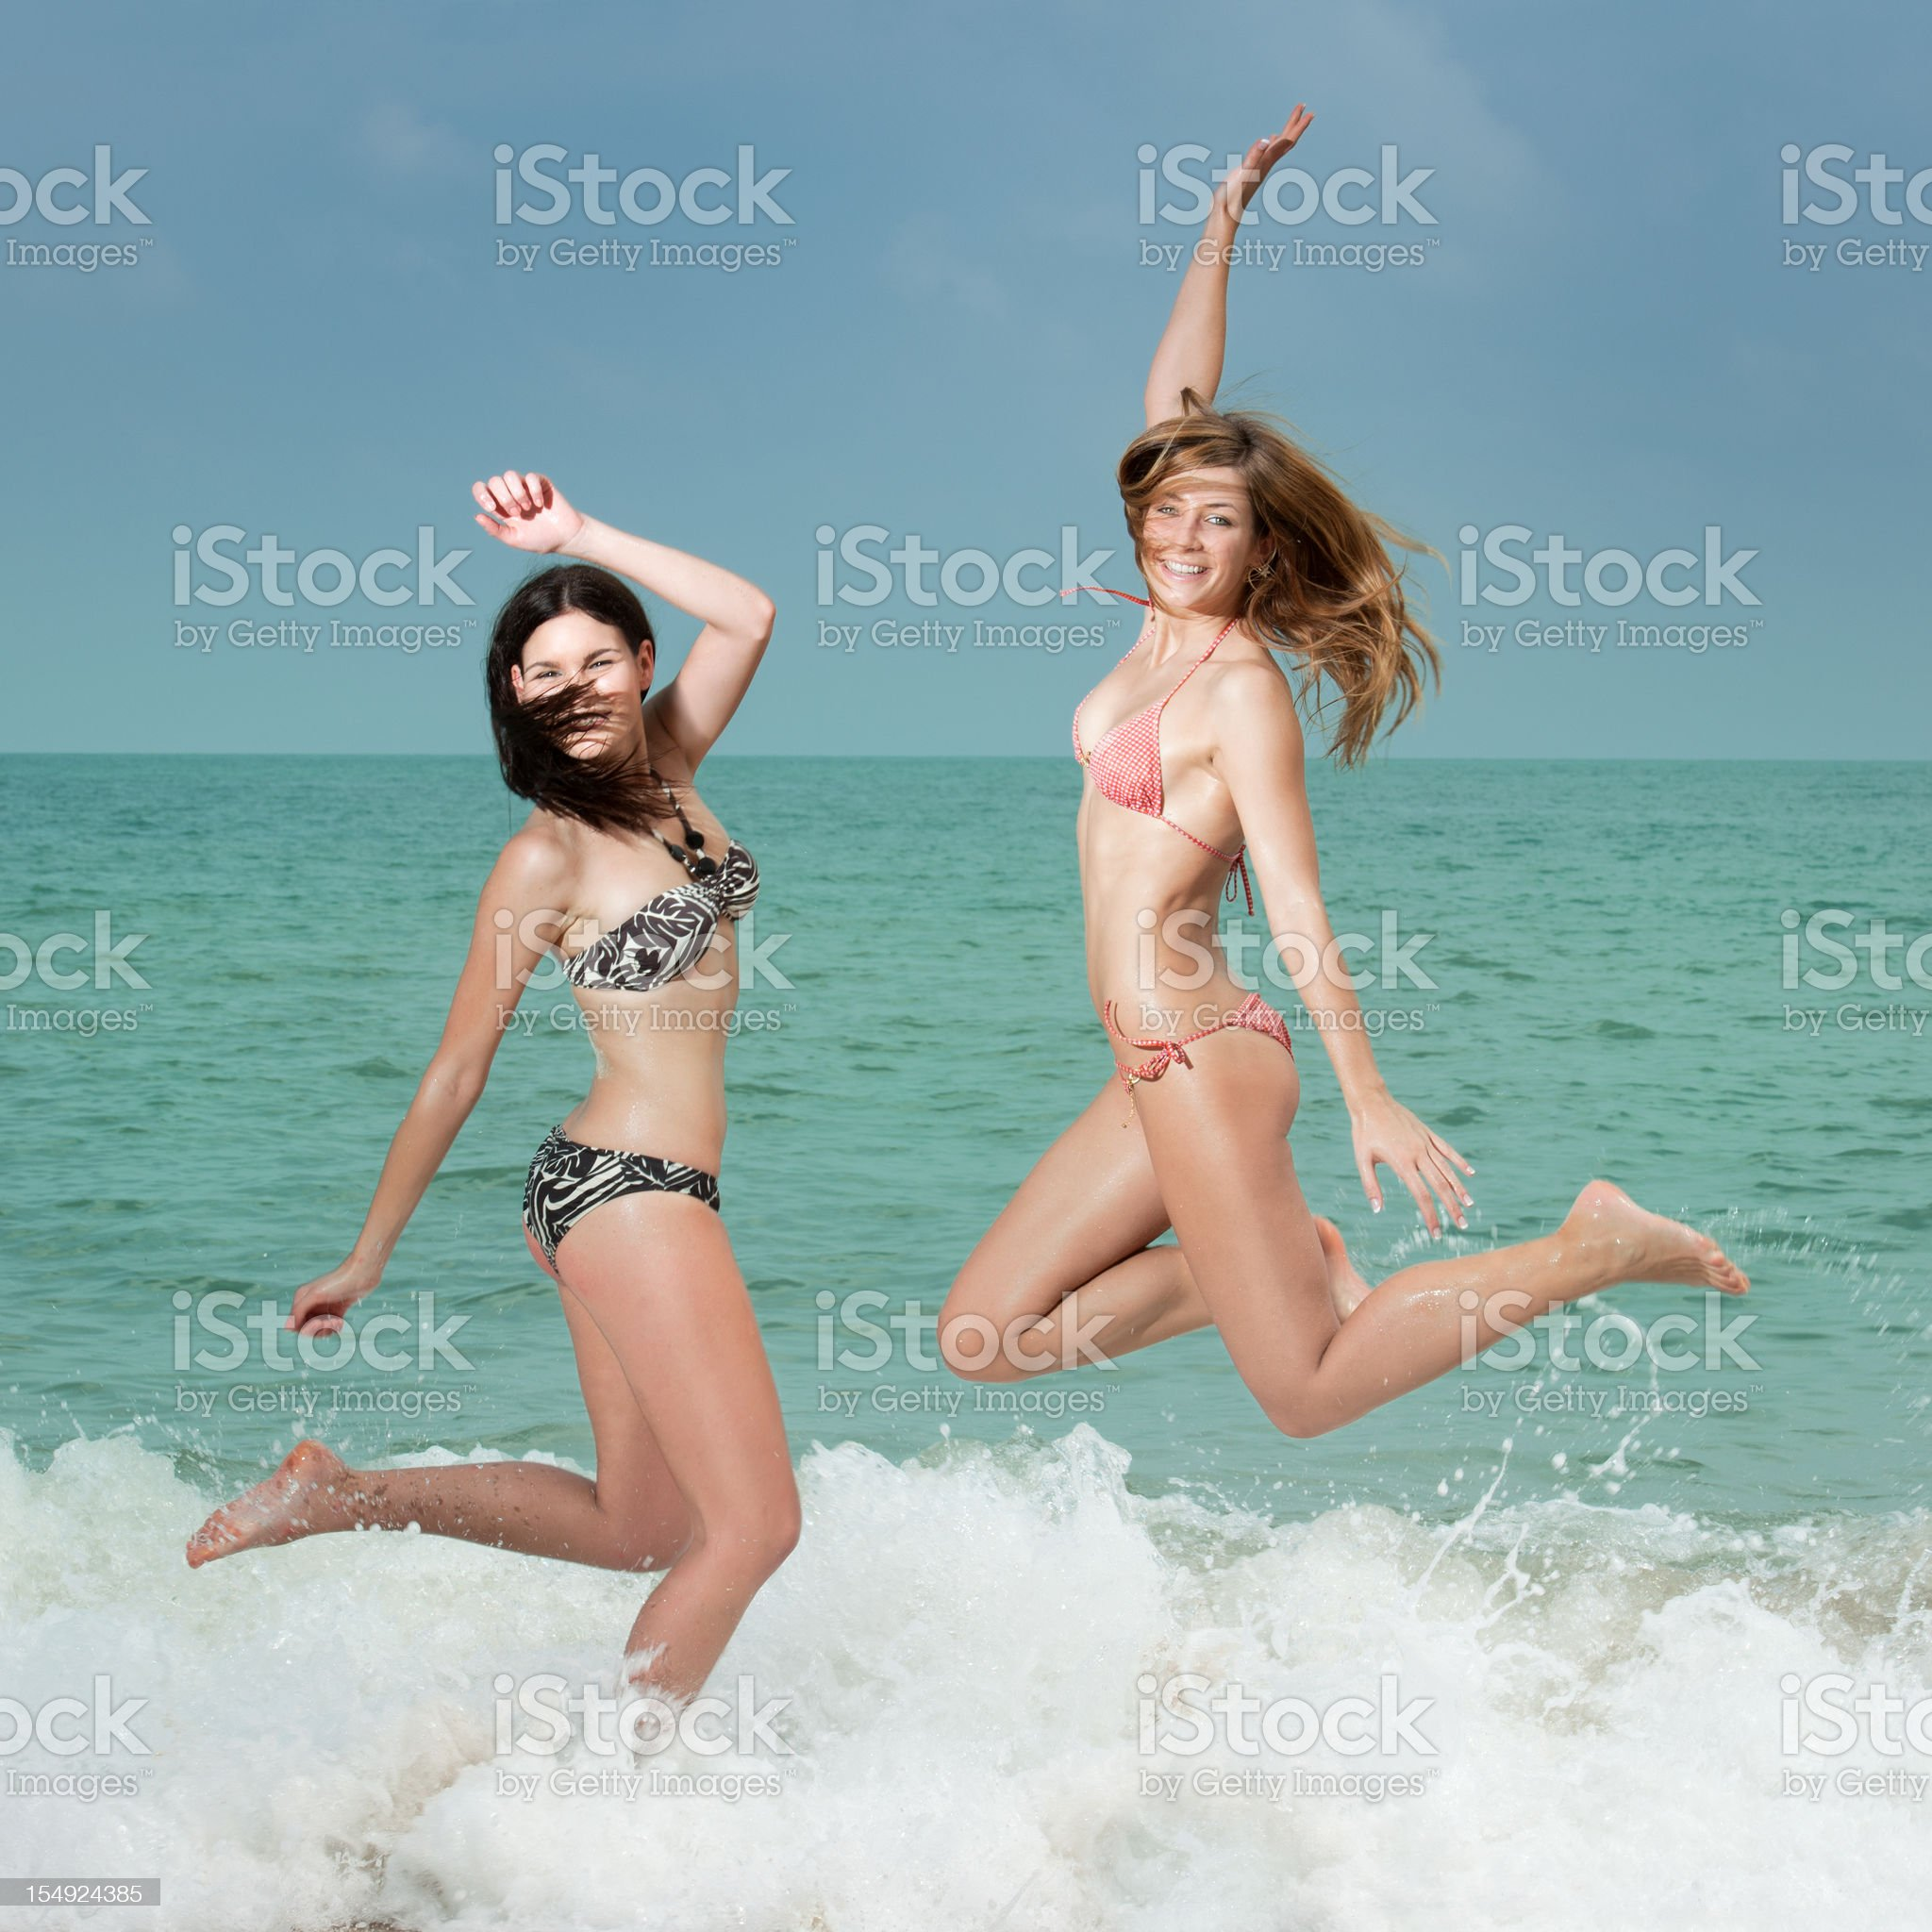 Splash! - Two Beauties splashing through the waves (XXXL) royalty-free stock photo